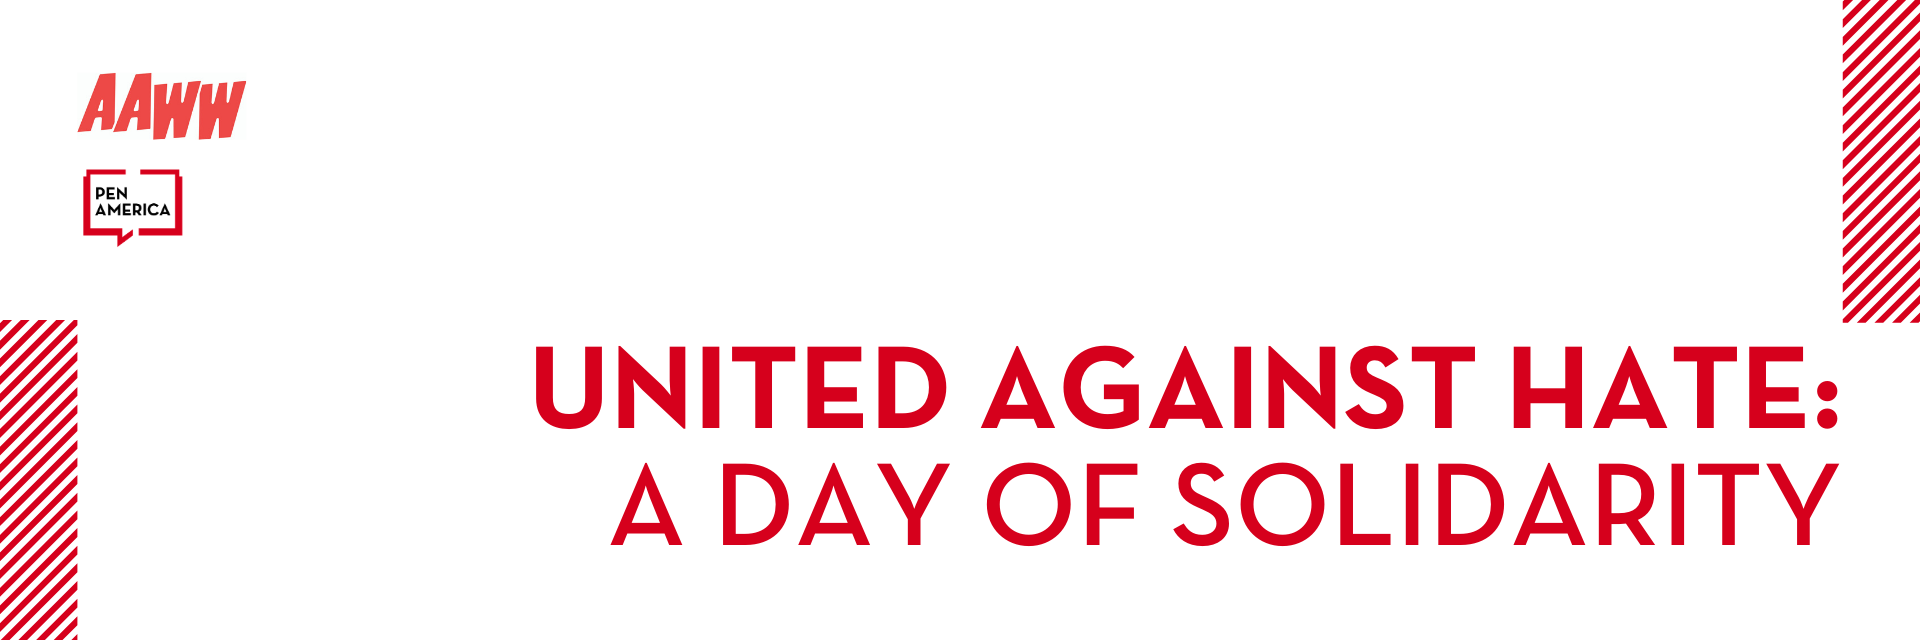 United Against Hate: A Day of Solidarity